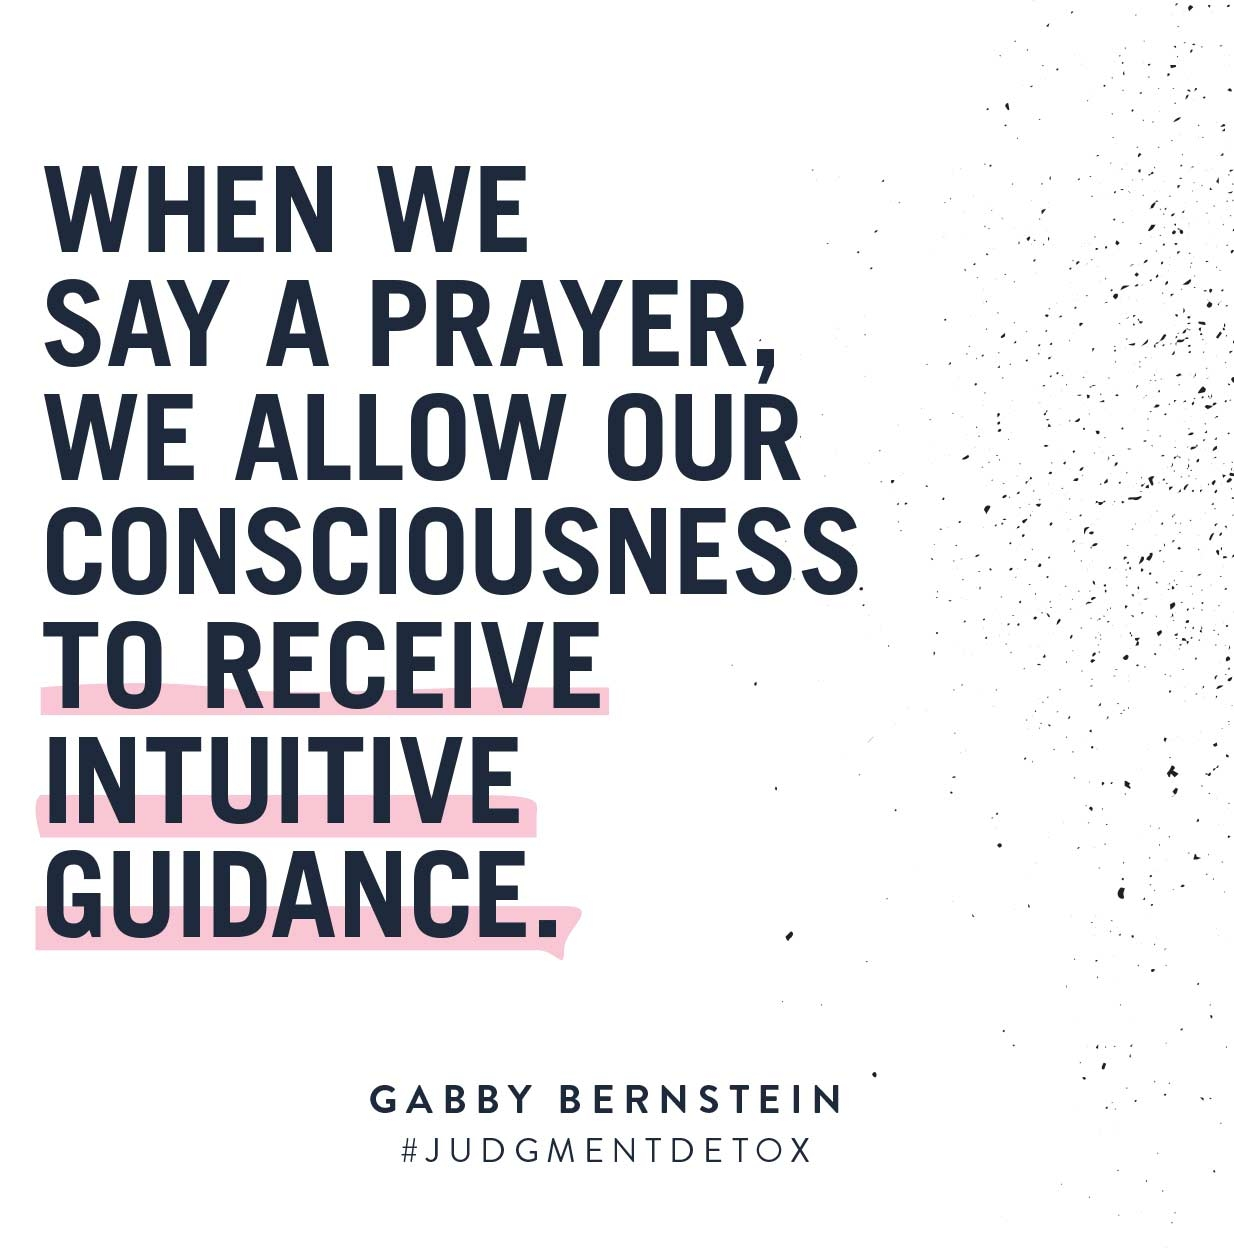 When we say a prayer, we allow our consciousness to receive intuitive guidance | Judgment Detox | Gabby Bernstein